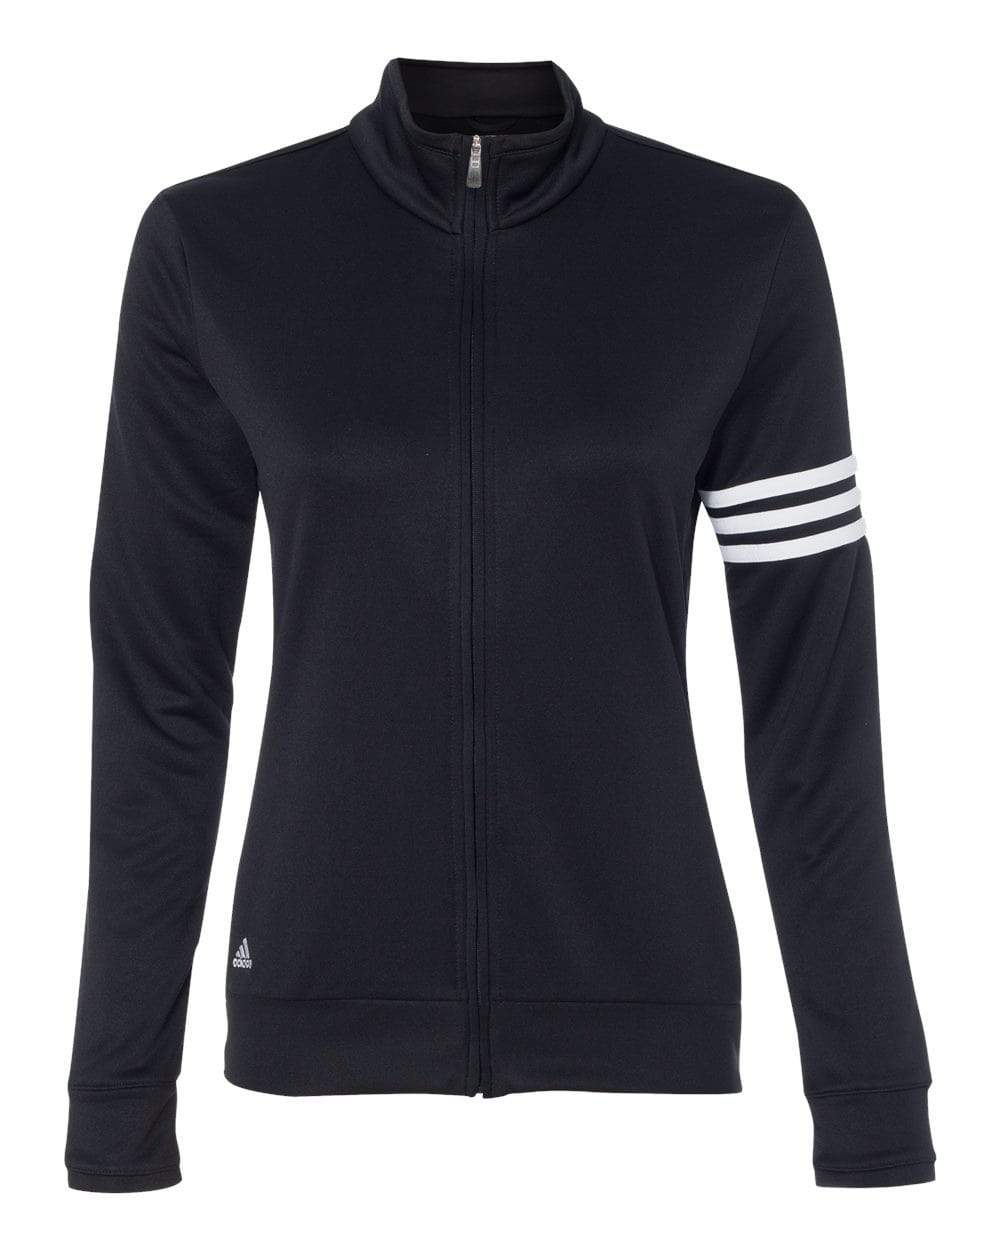 adidas Layering S / BLACK/WHITE Adidas Women's Golf ClimaLite 3-Stripes French Terry Full-Zip Jacket